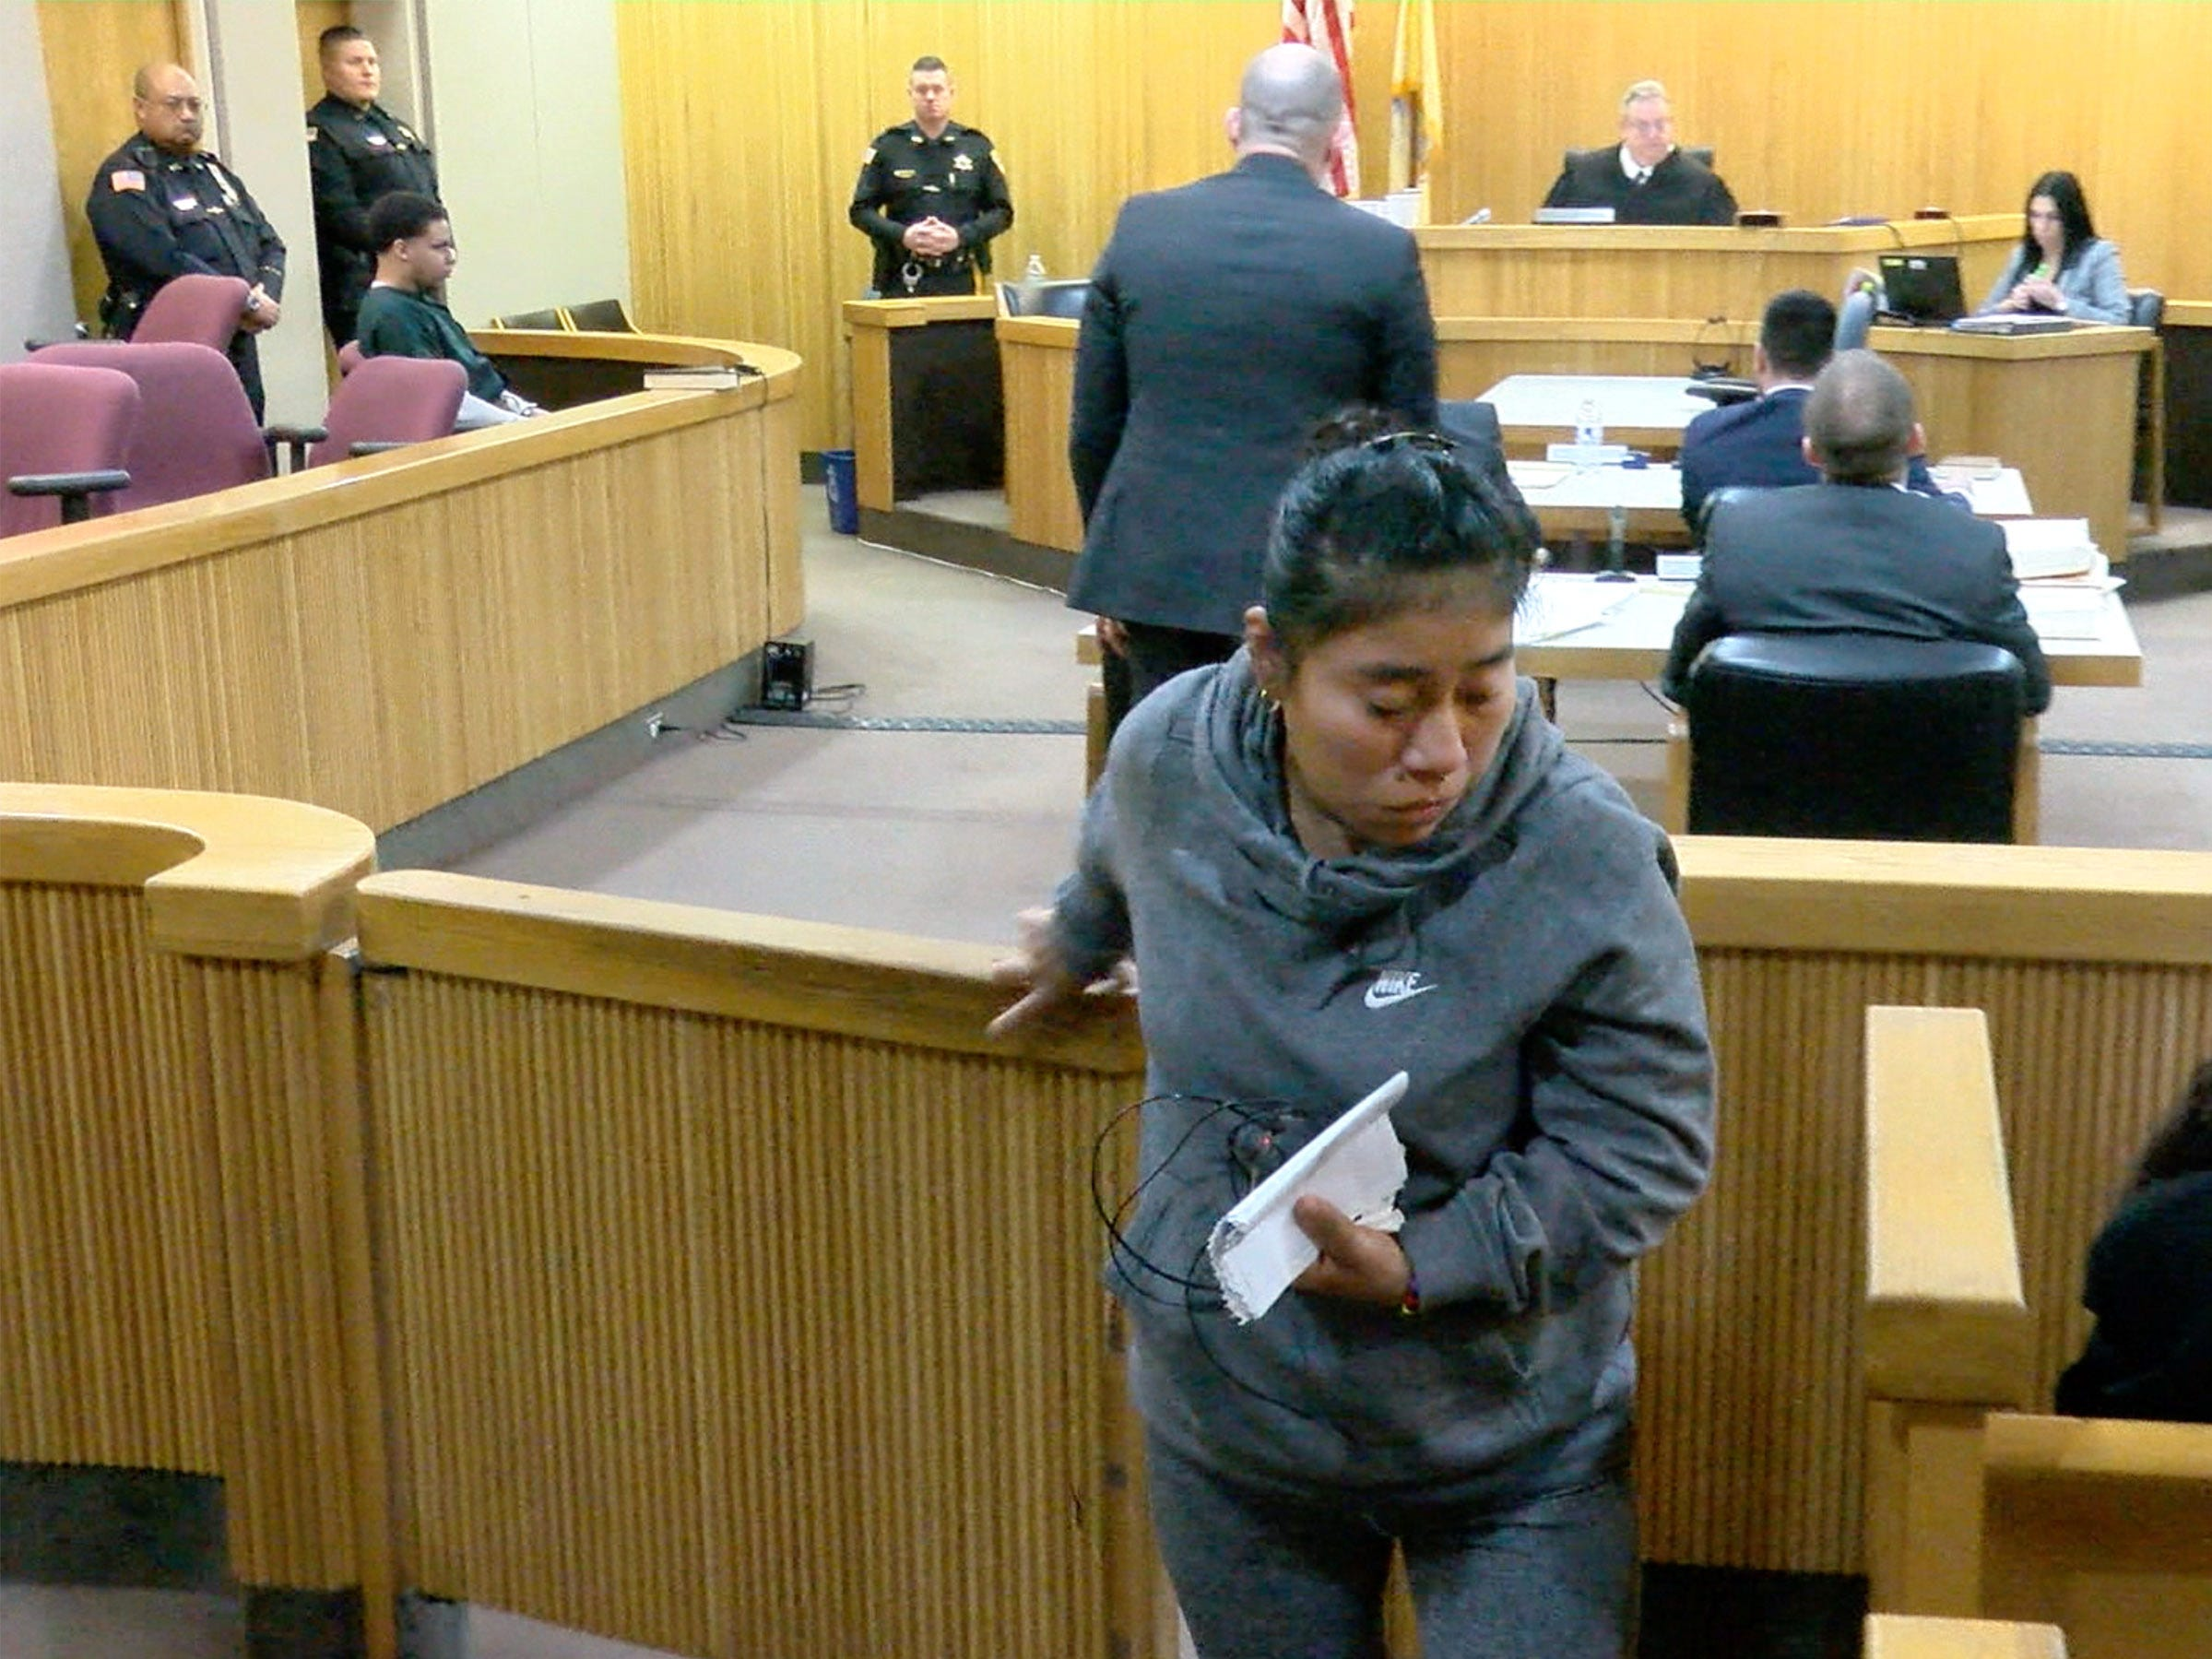 Yovanni Banos-Merino's mother Lilia Merino returns to her seat after she read letters to the court during the sentencing of Karon Council for the shooting death of her son in Asbury Park.  Council was sentenced before Judge Richard W. English in State Superior Court in Freehold Friday, January 11, 2019.